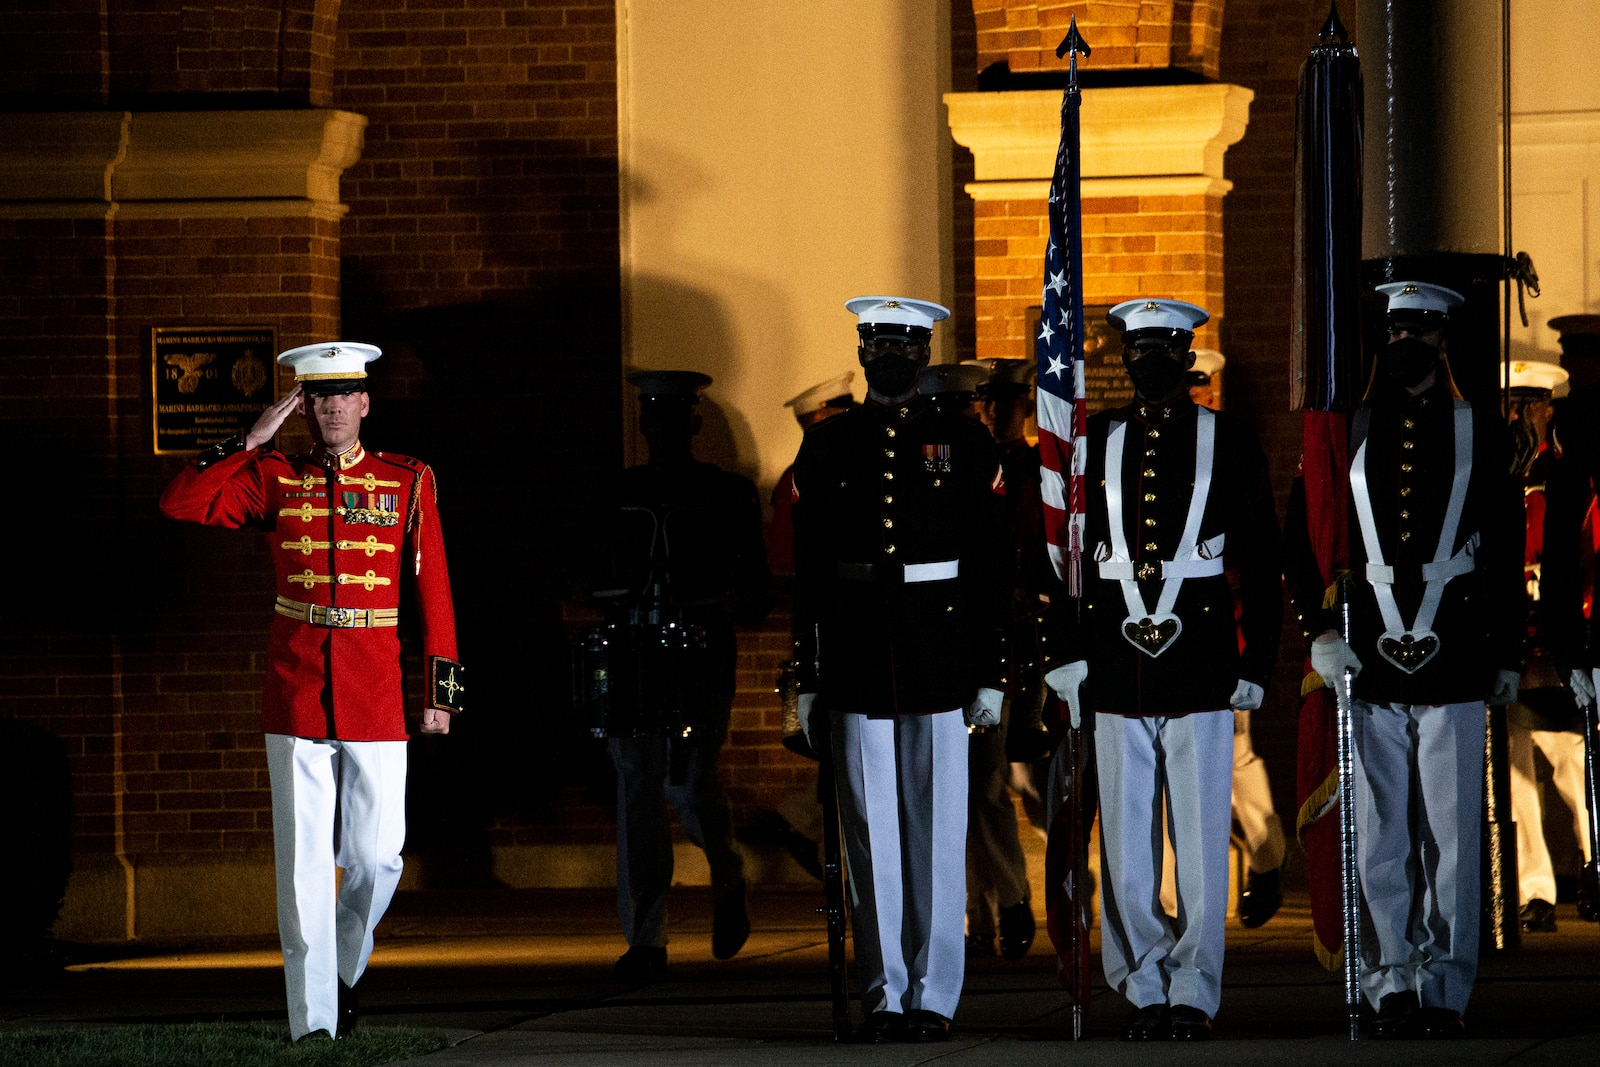 """Captain Nathan D. Morris, assistant director, """"The Commandant's Own,"""" U.S. Marine Drum and Bugle Corps, salutes the national ensign during the Friday Evening Parade at Marine Barracks Washington, July 30, 2021"""